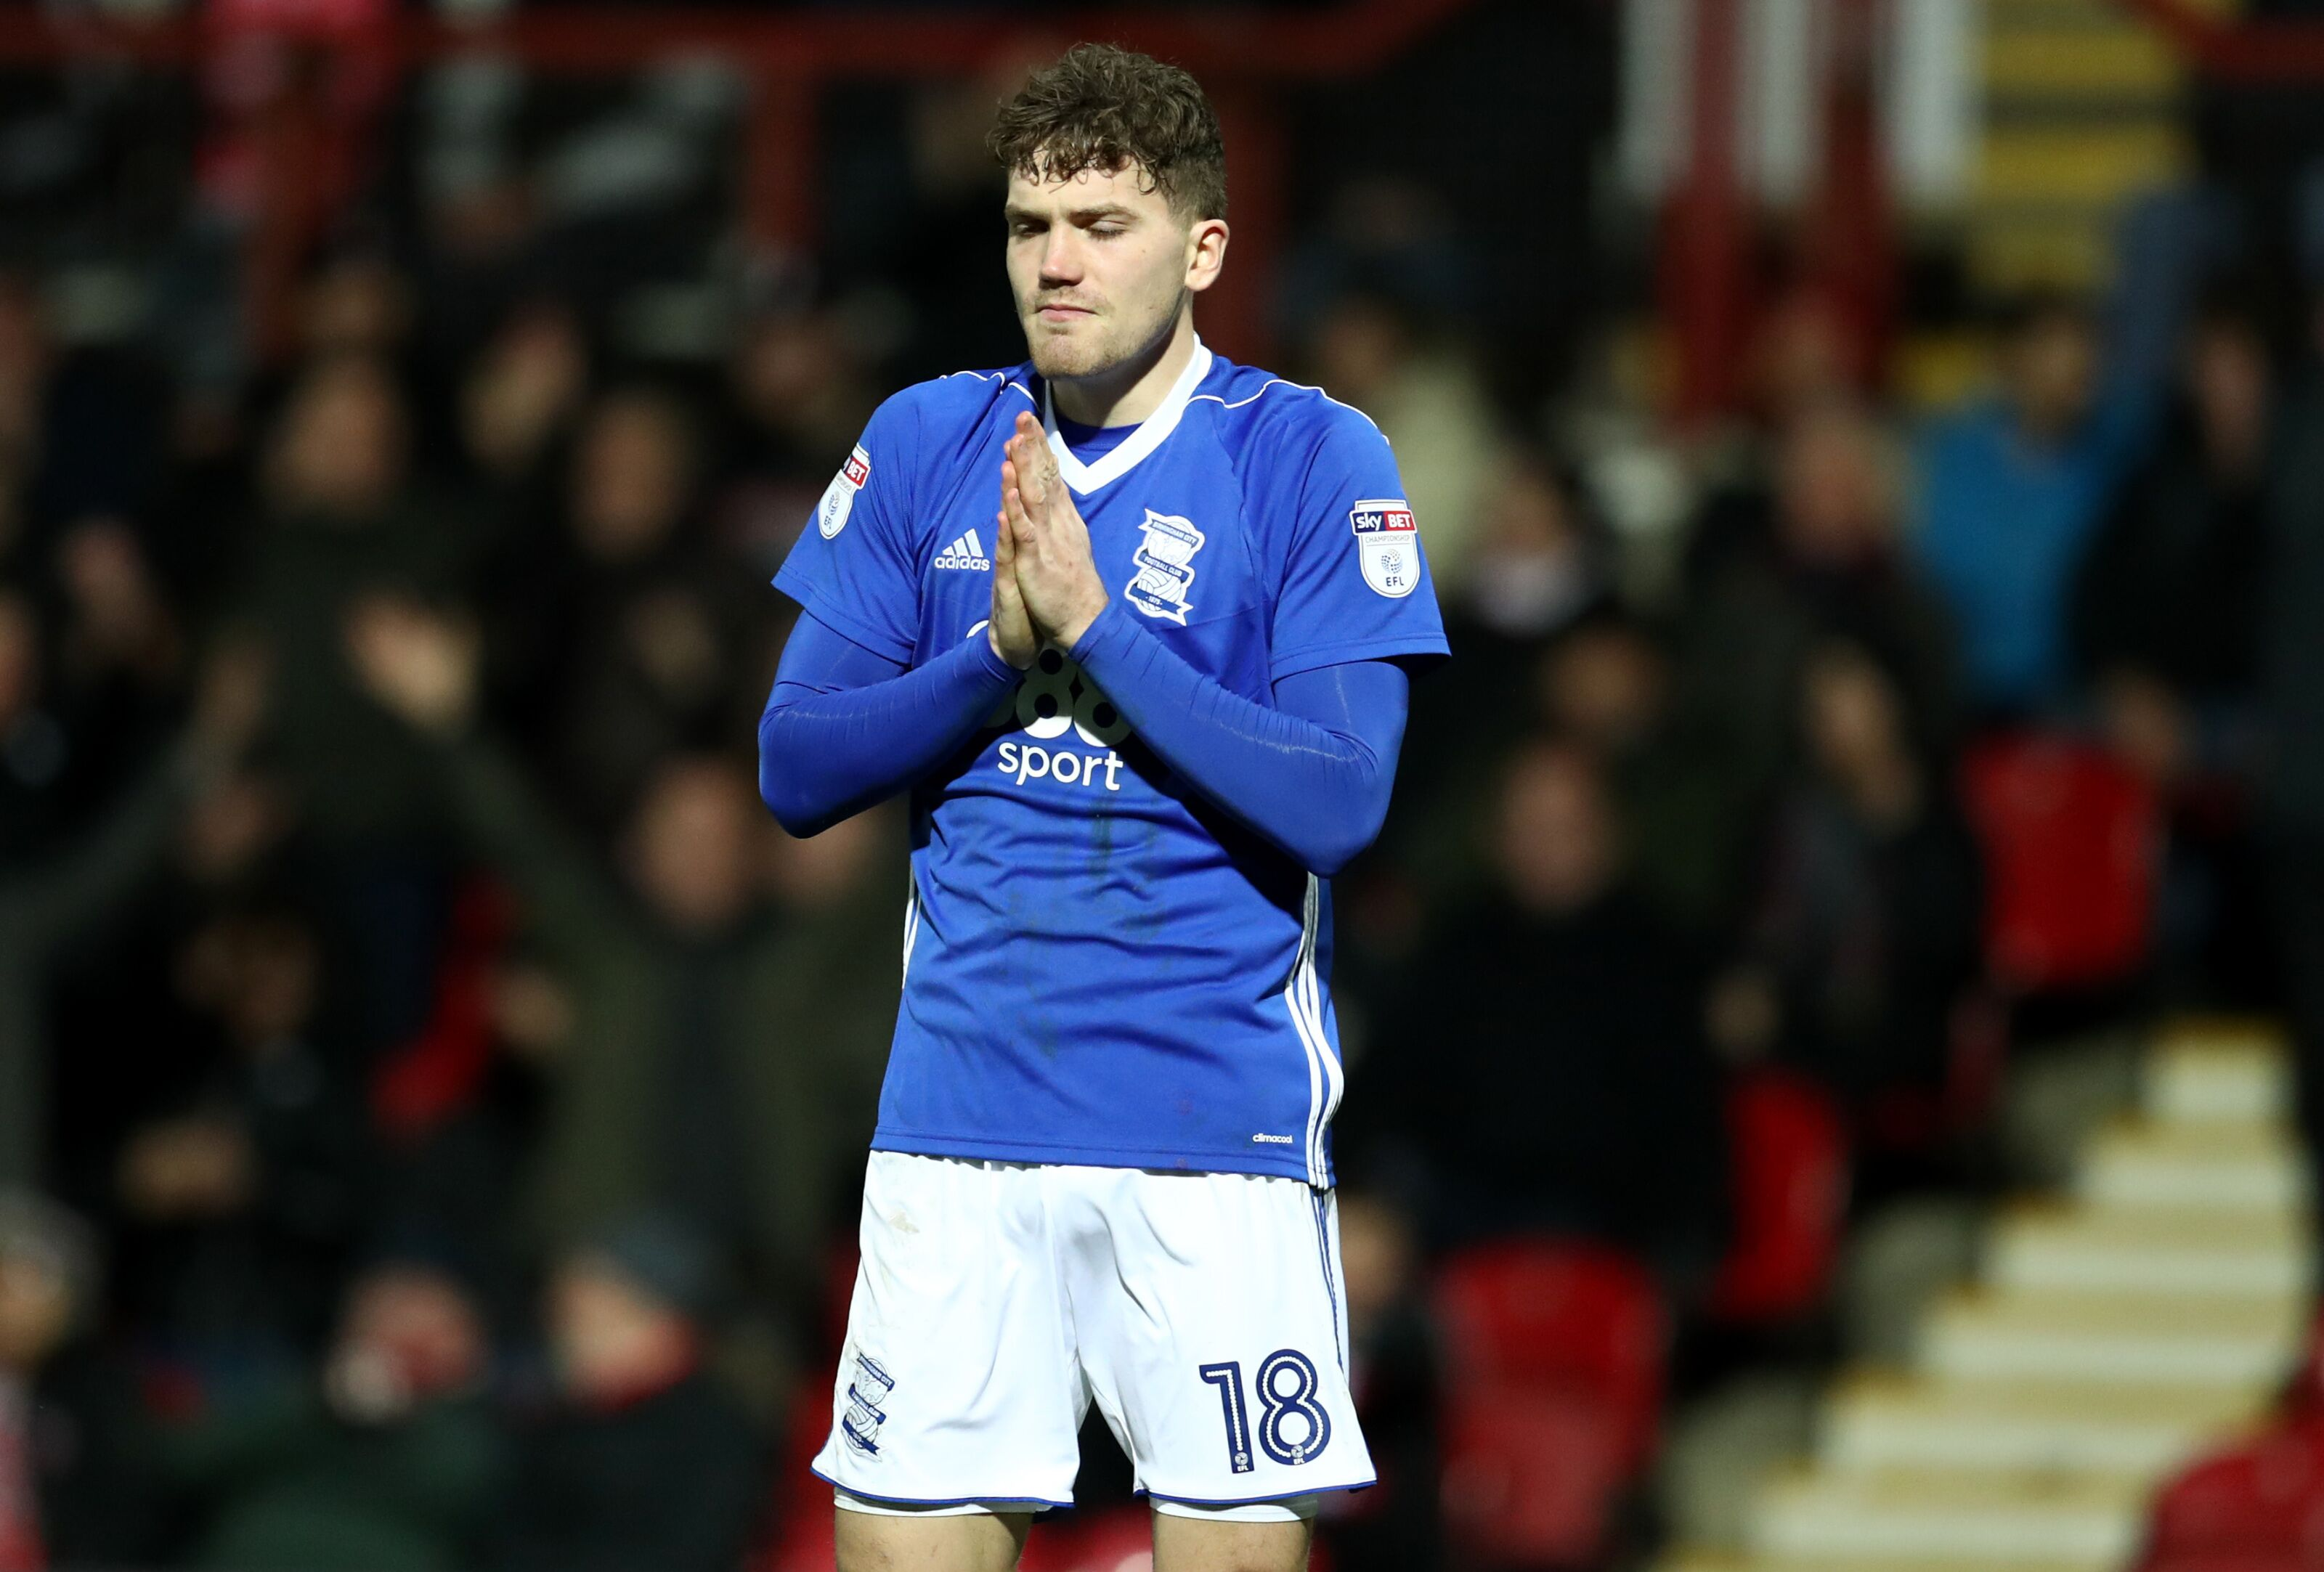 Southampton: The club confirms sale of Gallagher to Blackburn